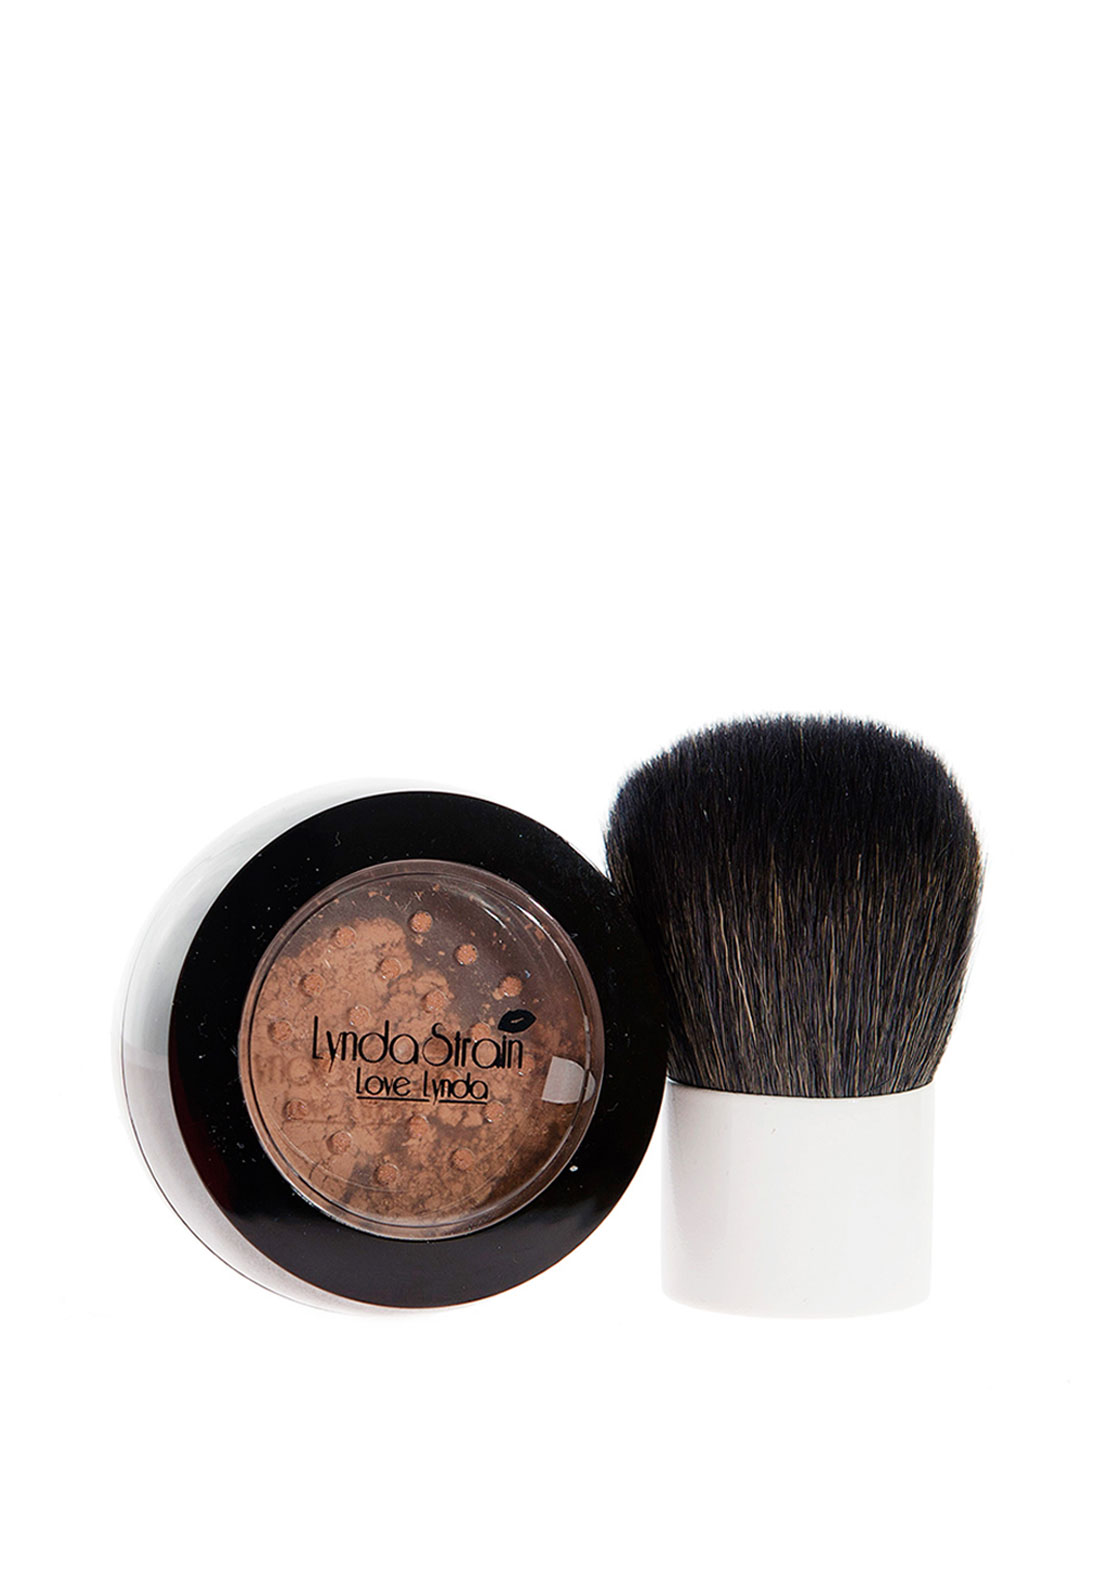 Lynda Strain Love Lynda Mineral Loose Foundation, Cool 3